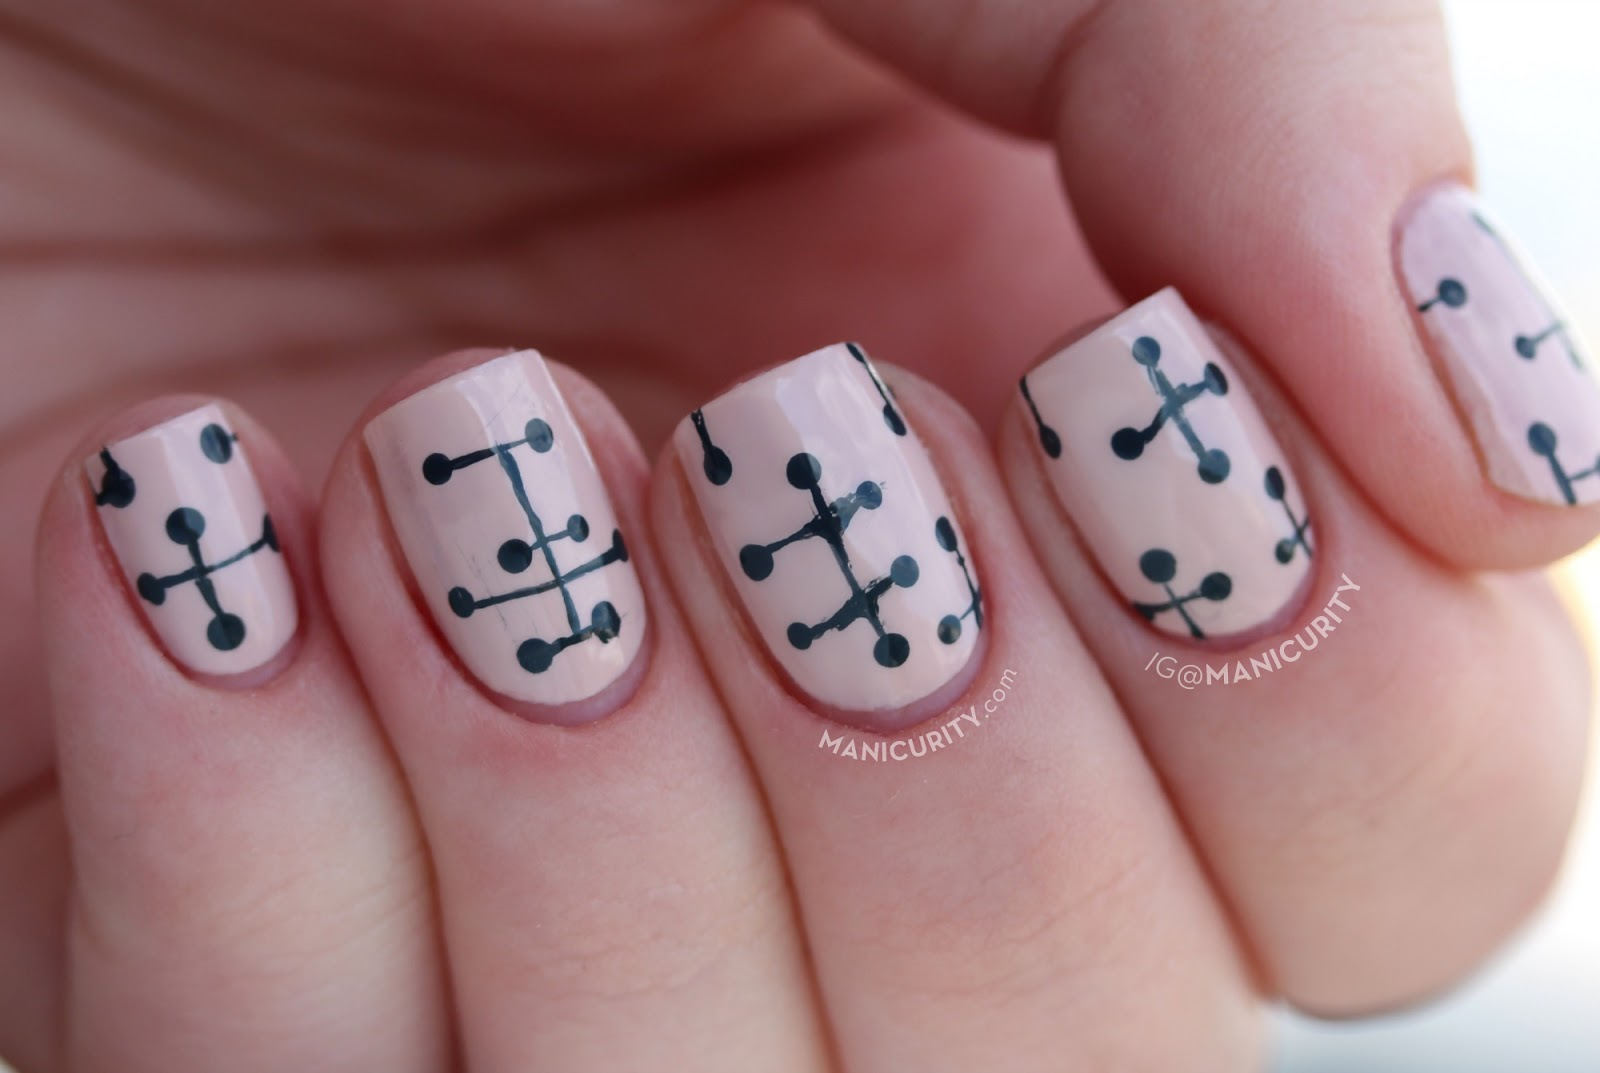 The Digit-al Dozen does Vintage: Eames Dot Pattern Nails with Floss Gloss Dinge and Faded - easy nail art idea! | Manicurity.com